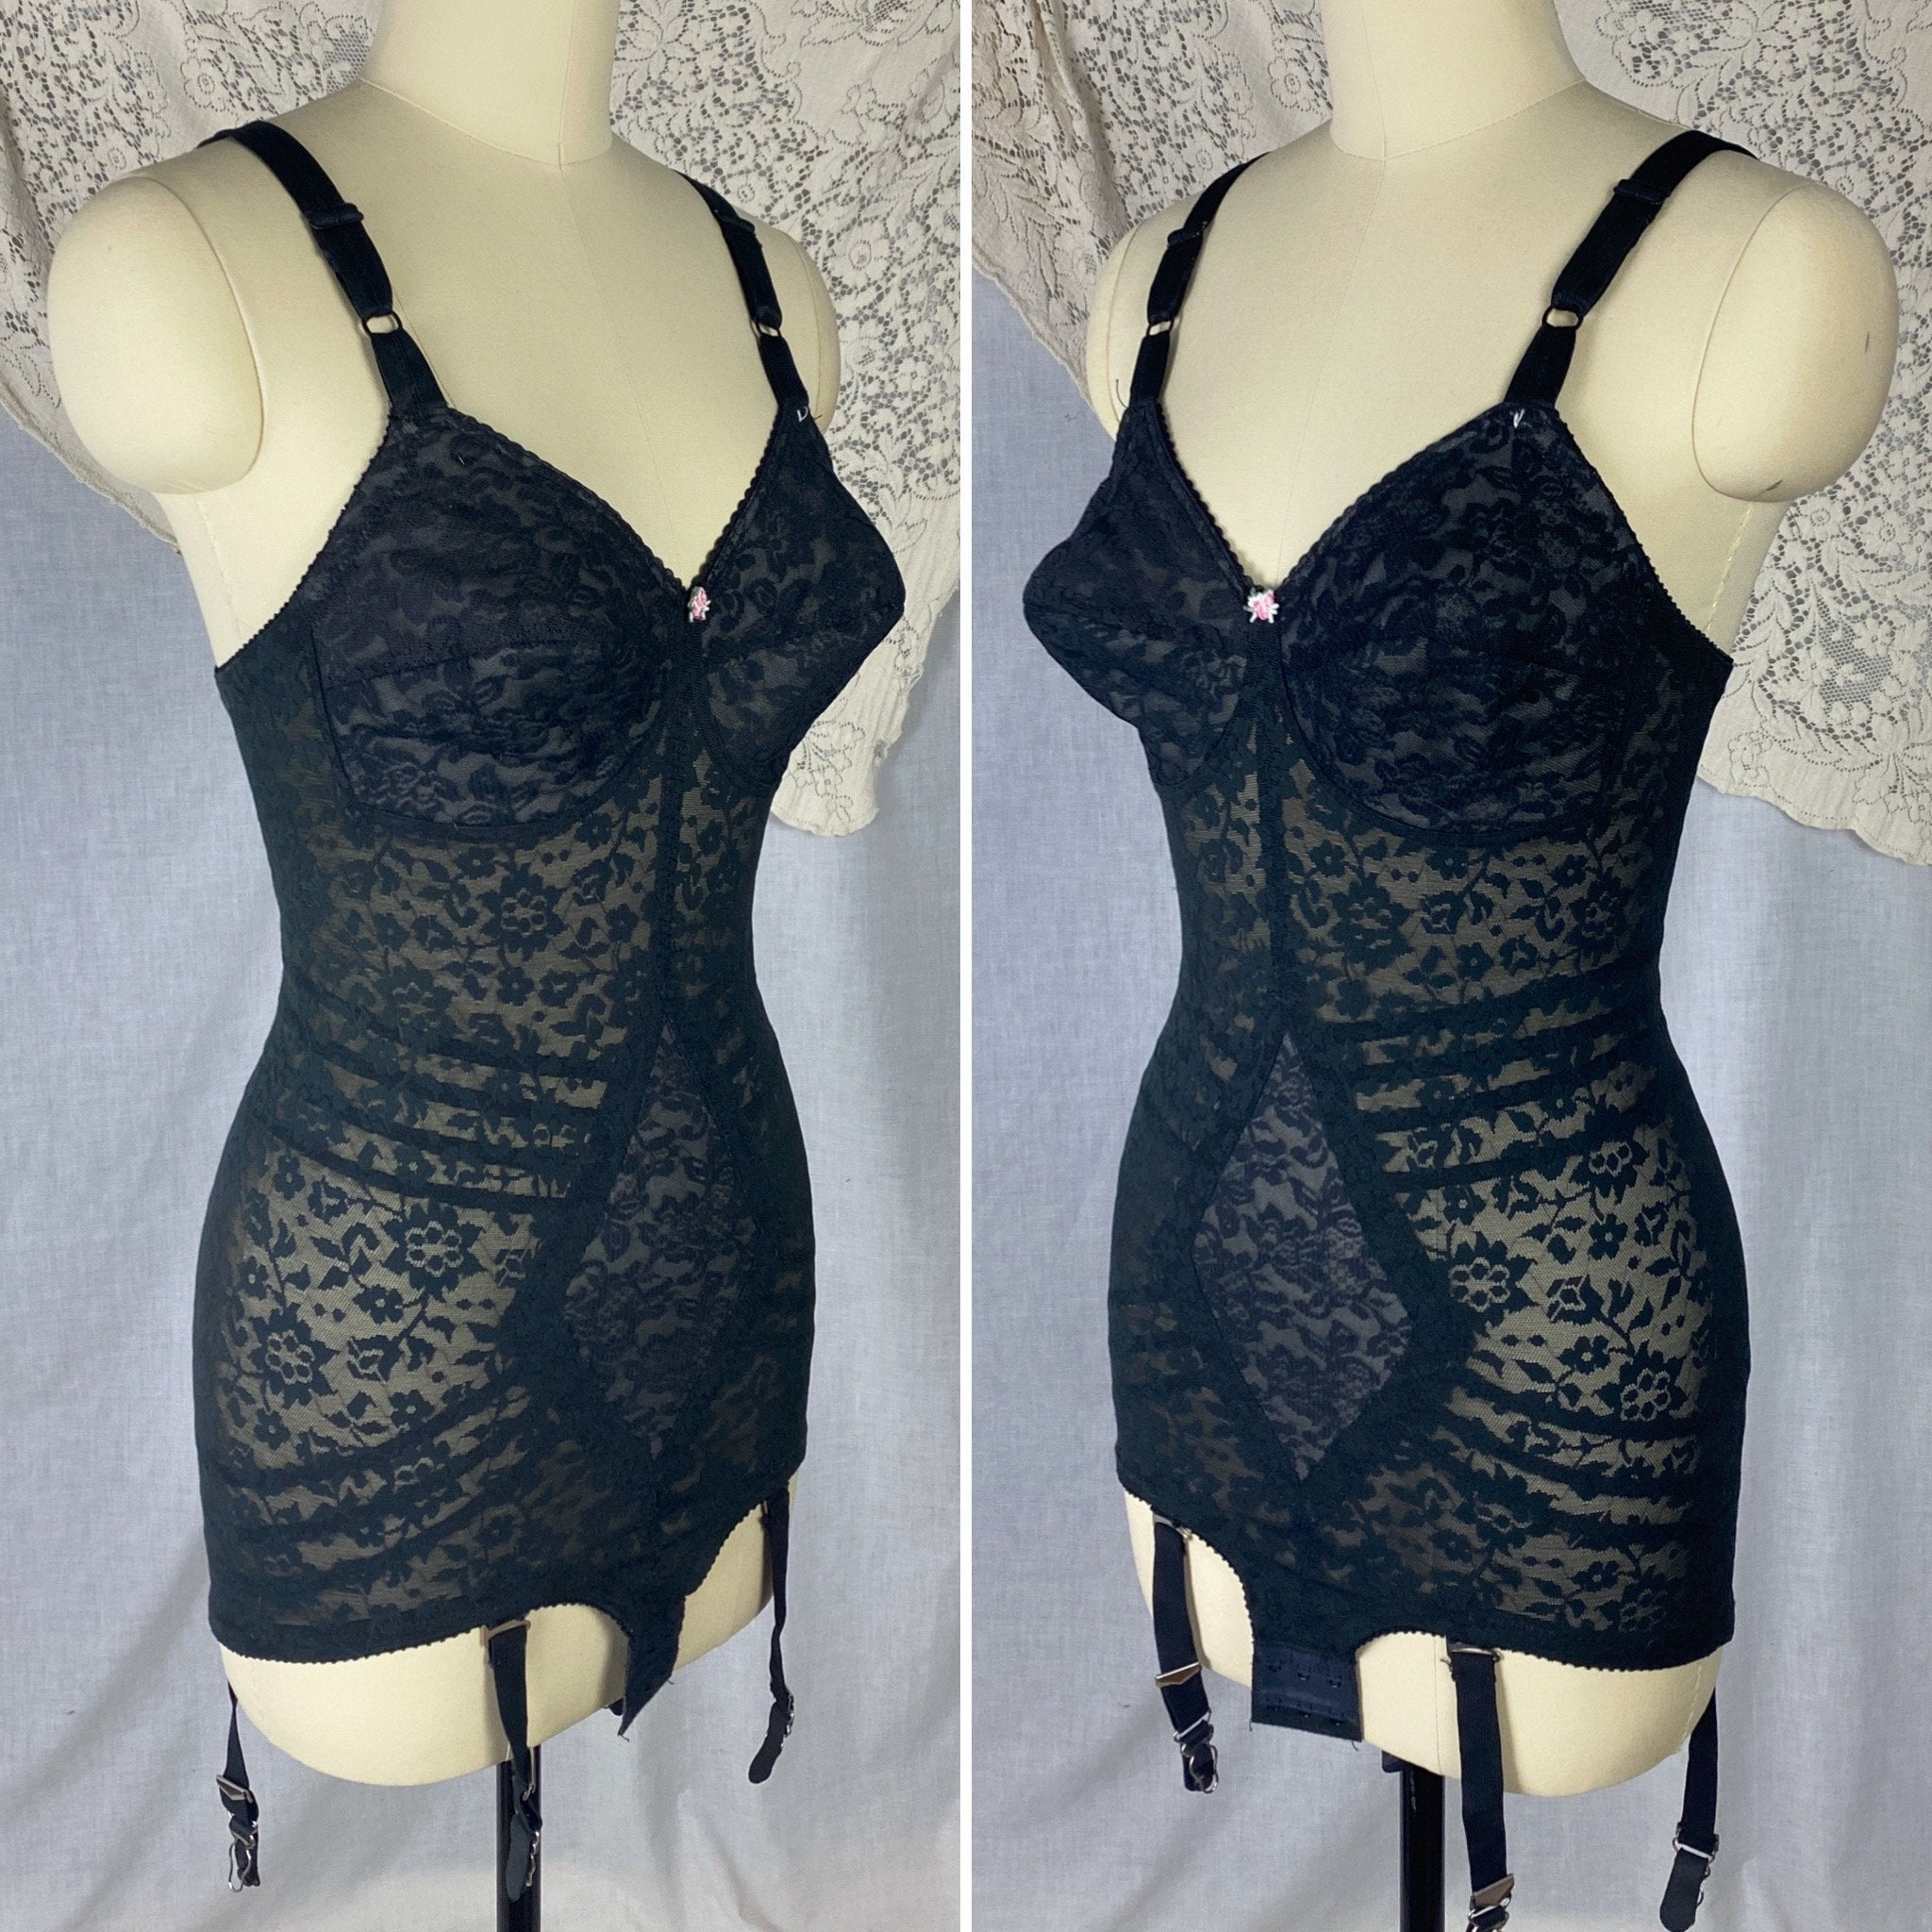 Vintage 1960's Bodysuit | Black Lace Nylon & Spandex with Detachable Garters | Size 34 C, 36 B, 32 D | Rago Shapewear - Daggers & Dames